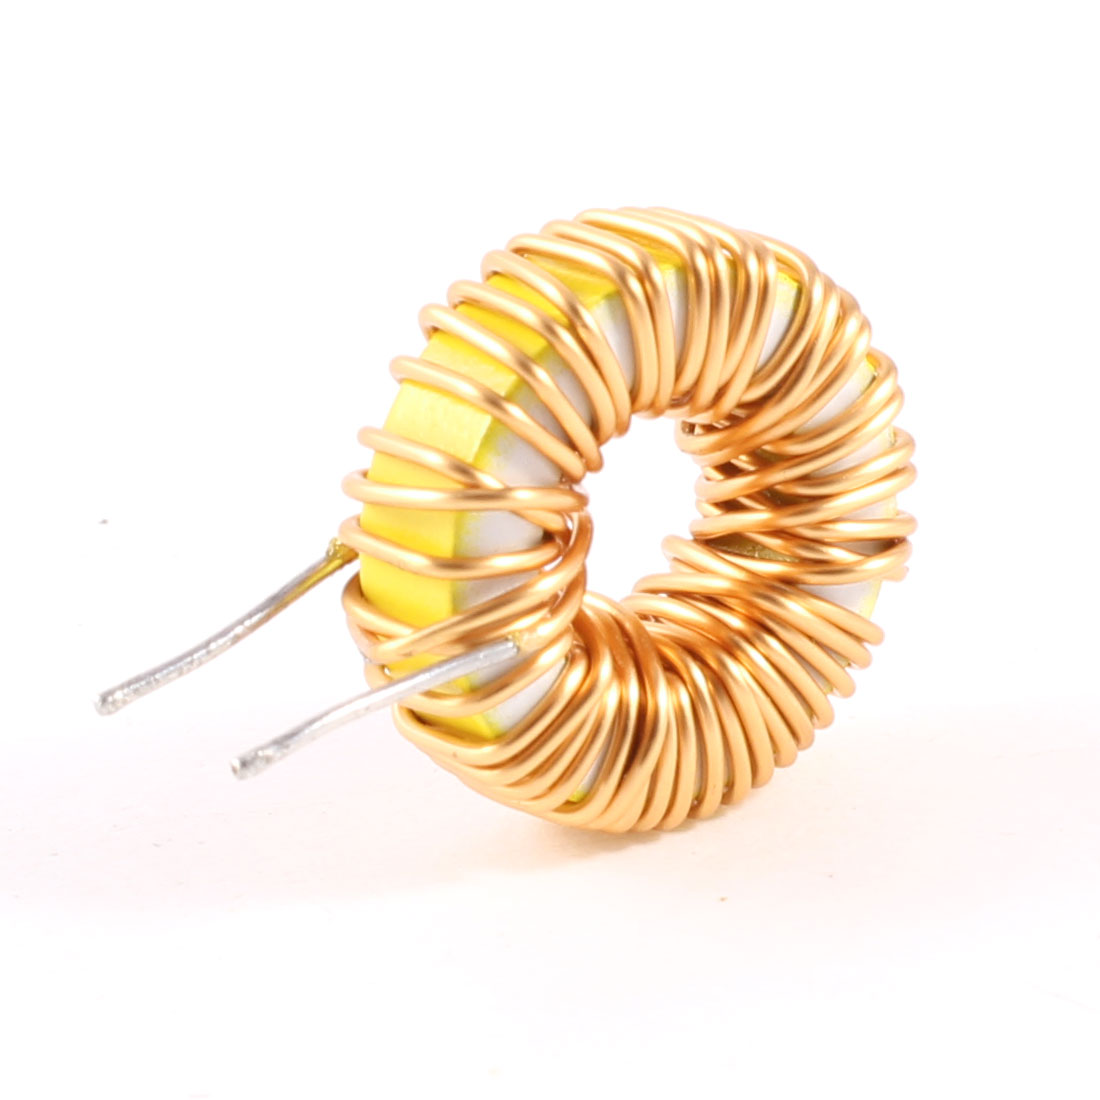 Toroid Core Inductor Wire Wind Wound 100uH 33mOhm 5A Coil